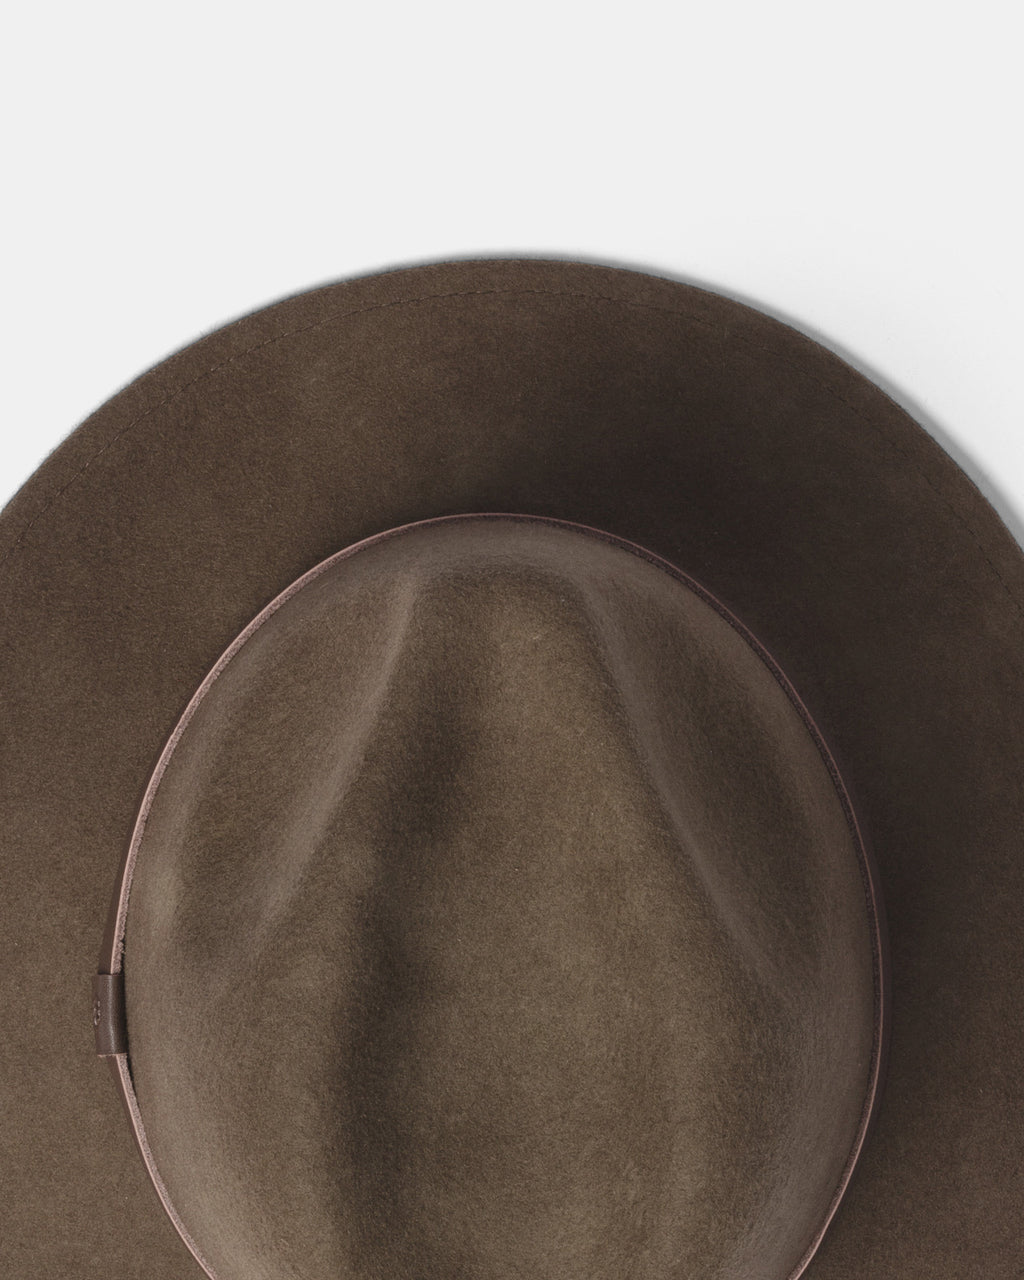 ... moulding to your head for the perfect fit – William will grow with you.  The brim can be shaped to sit up or down. Also available in Black. 0e0542a873f